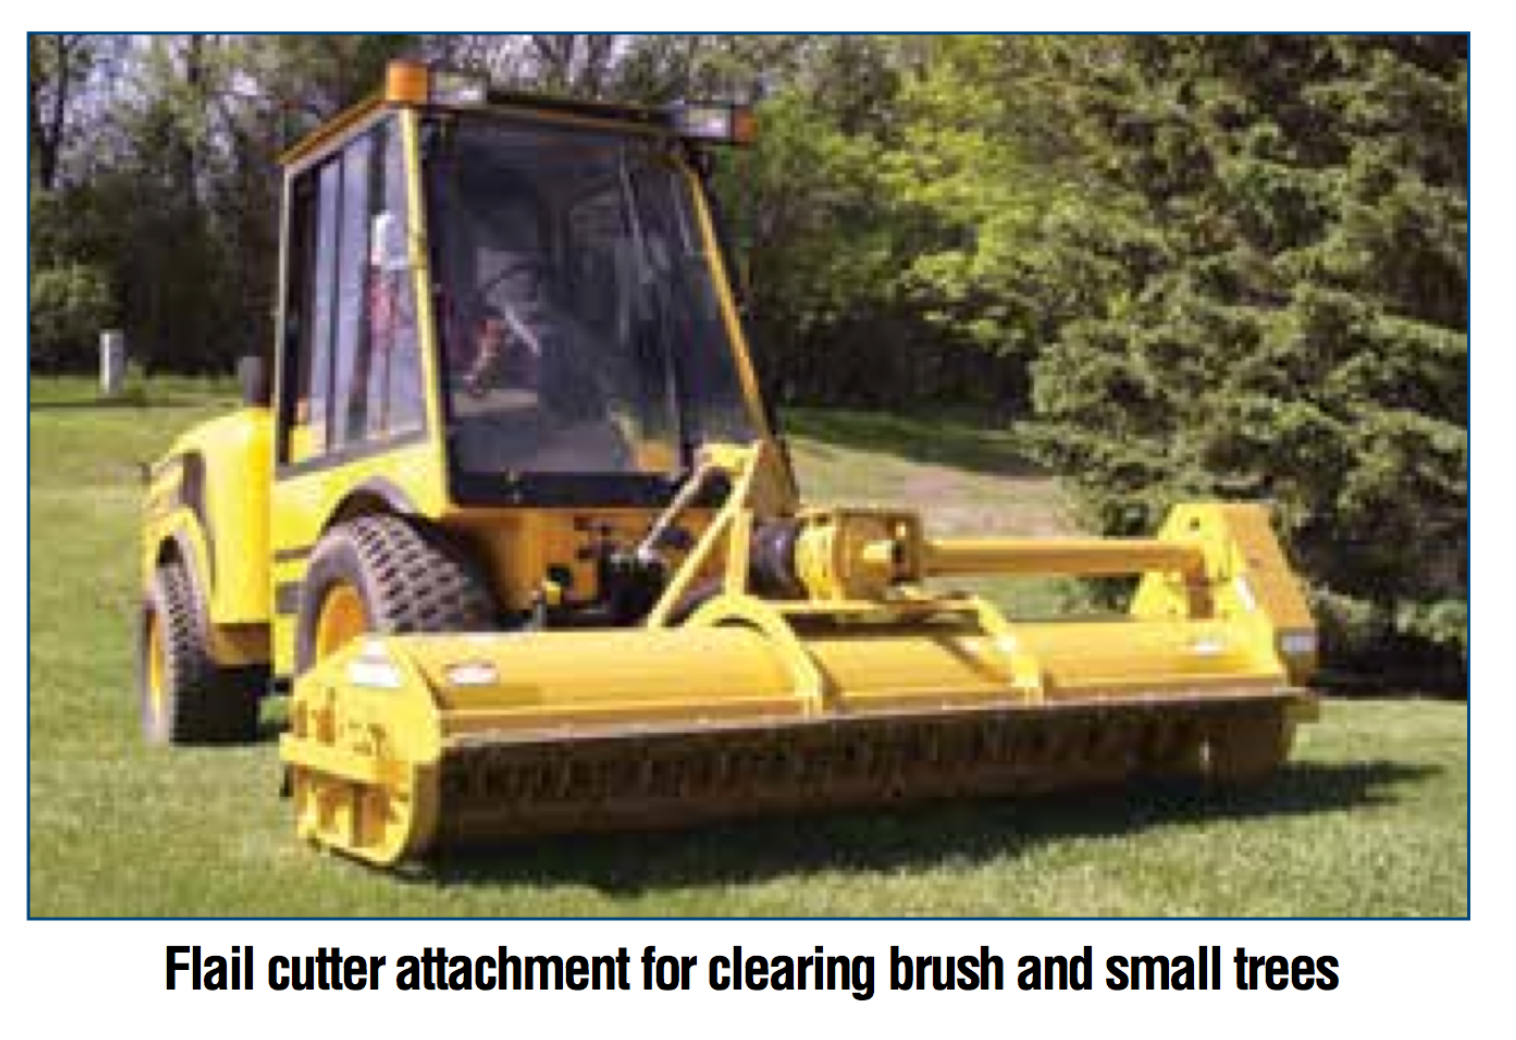 Flail Cutter attachment for clearing brush and small trees